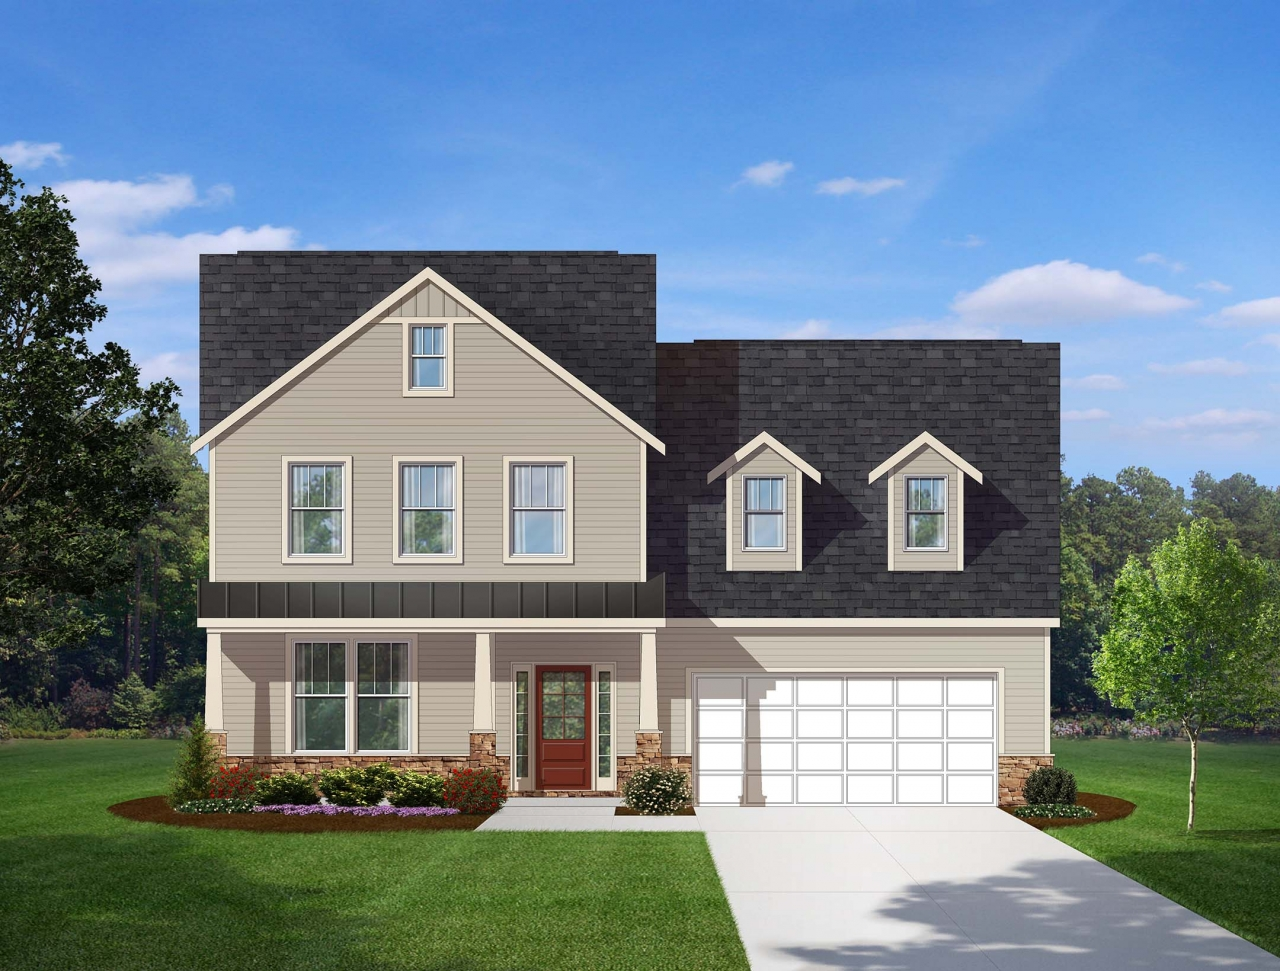 The Meadows at Fleming Farm | Cimarron Homes on